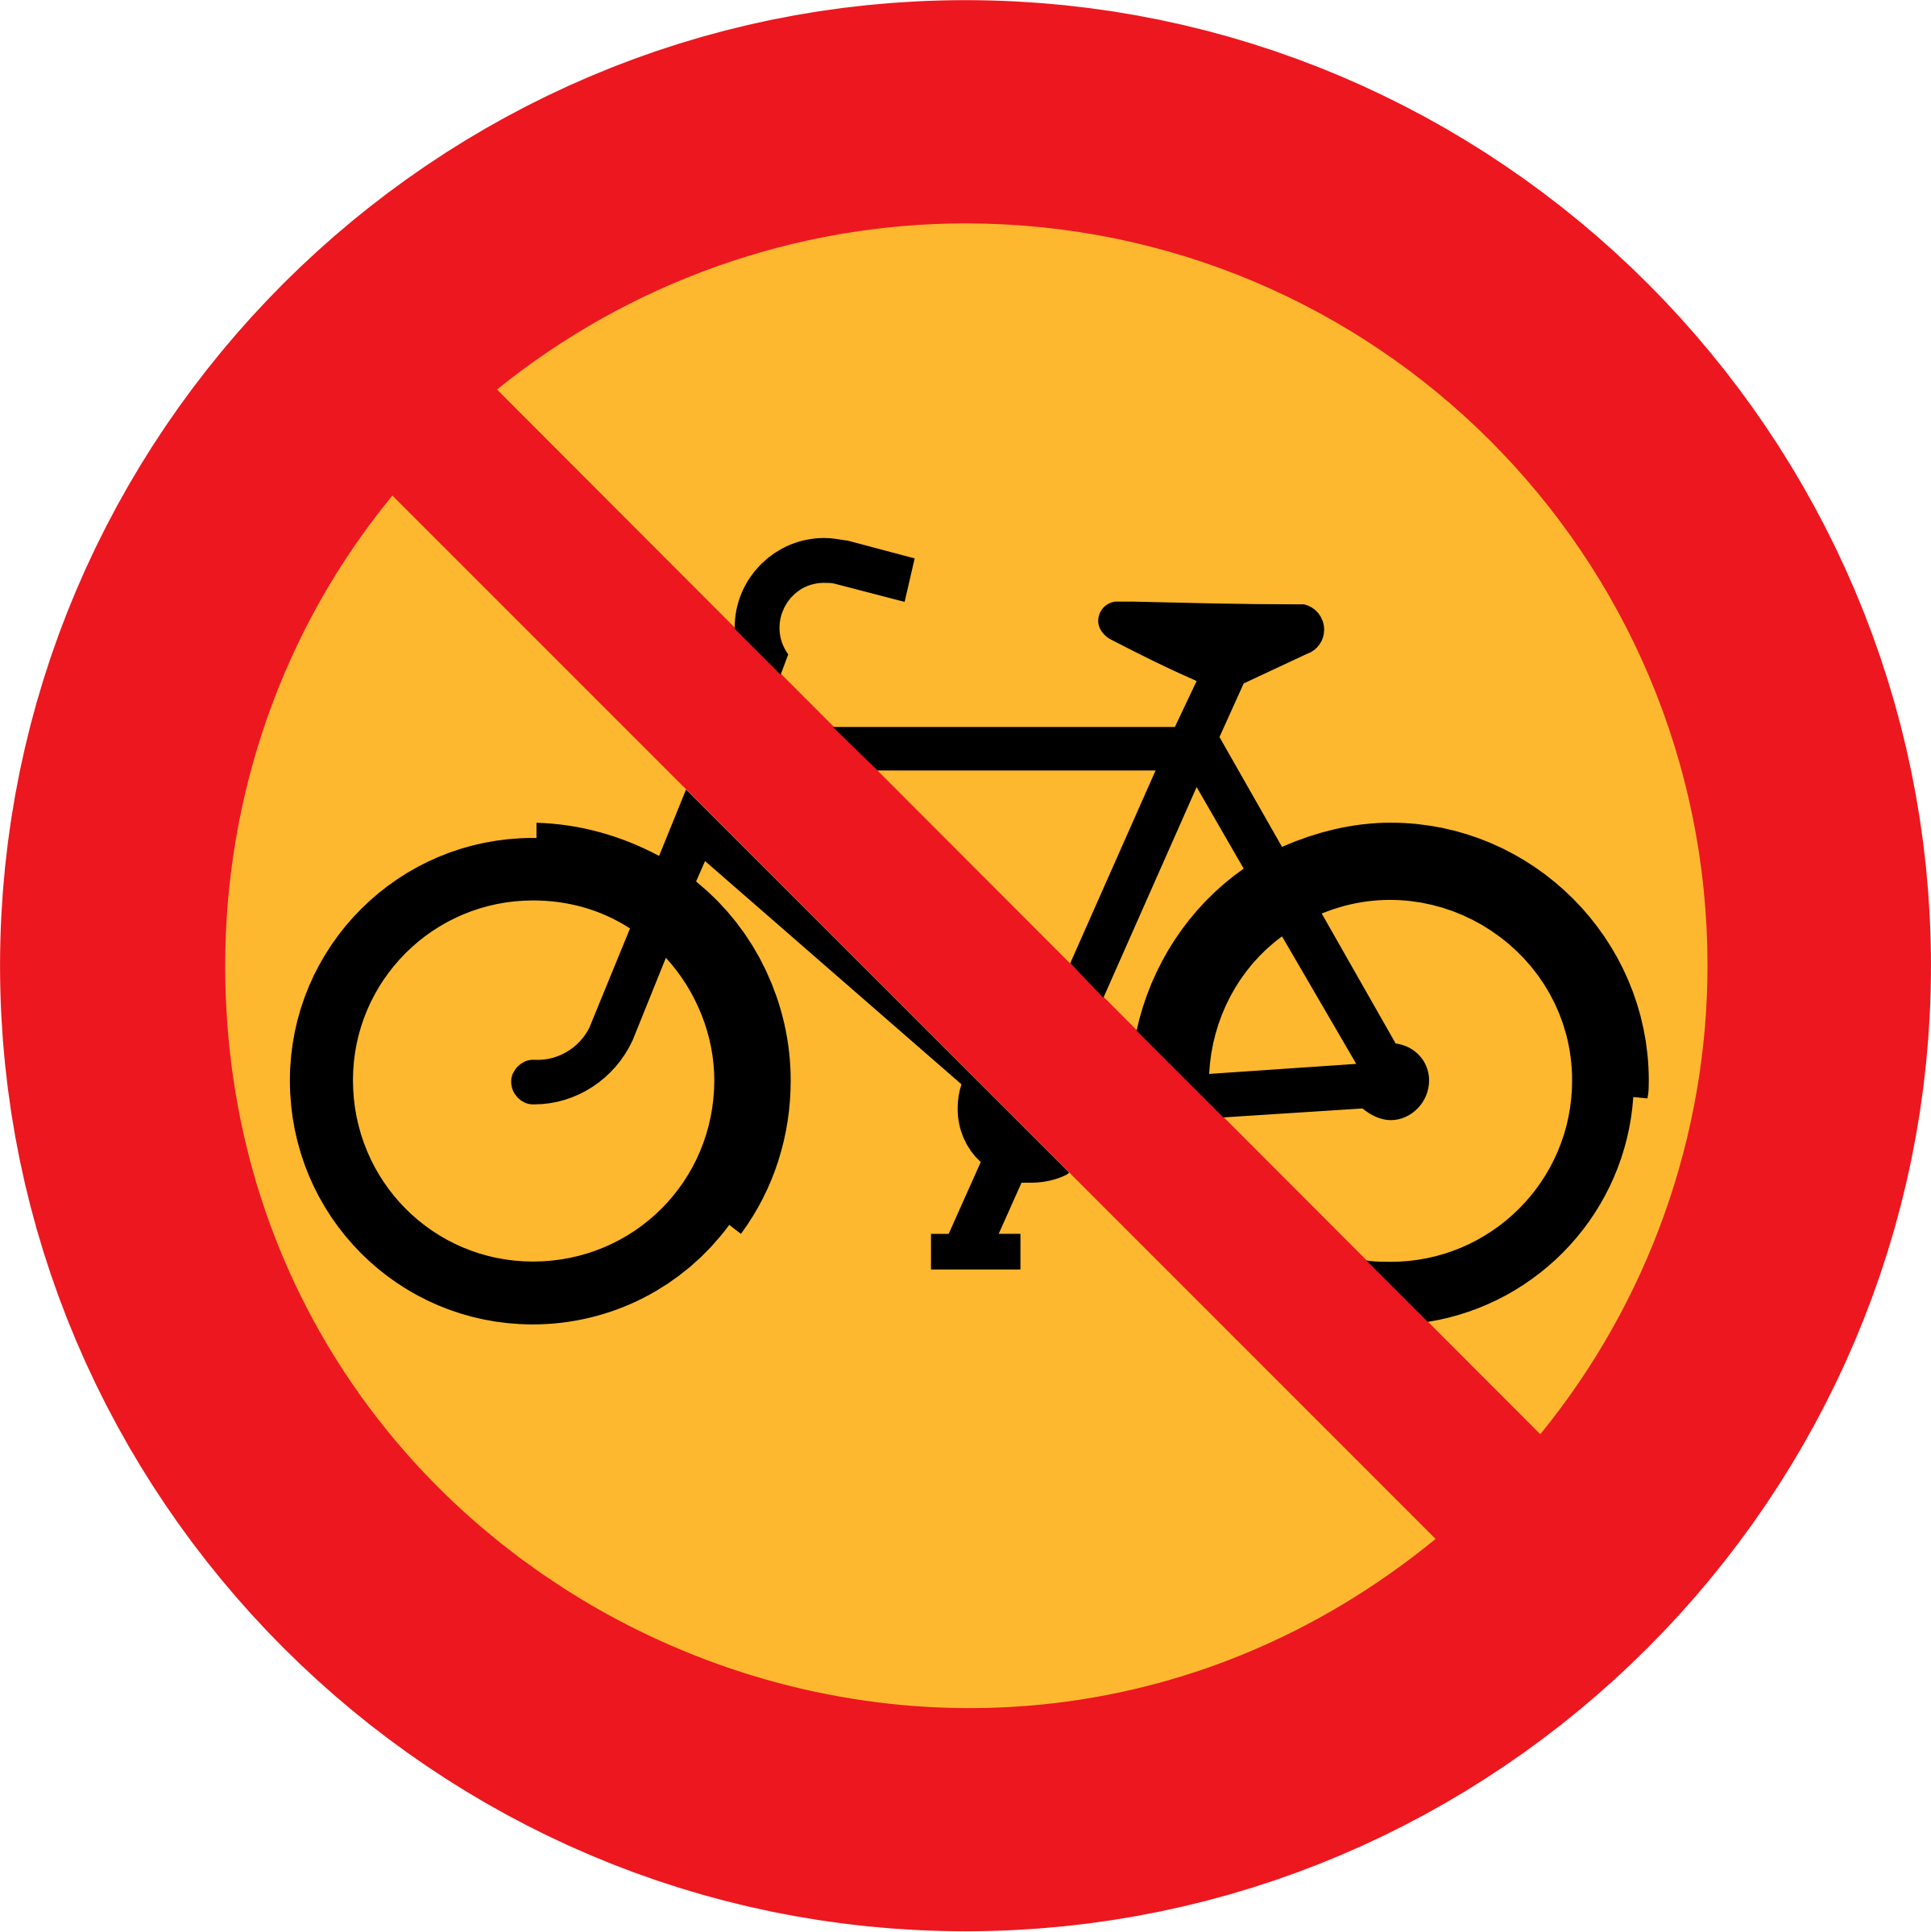 No Bicycles roadsign by ryanlerch